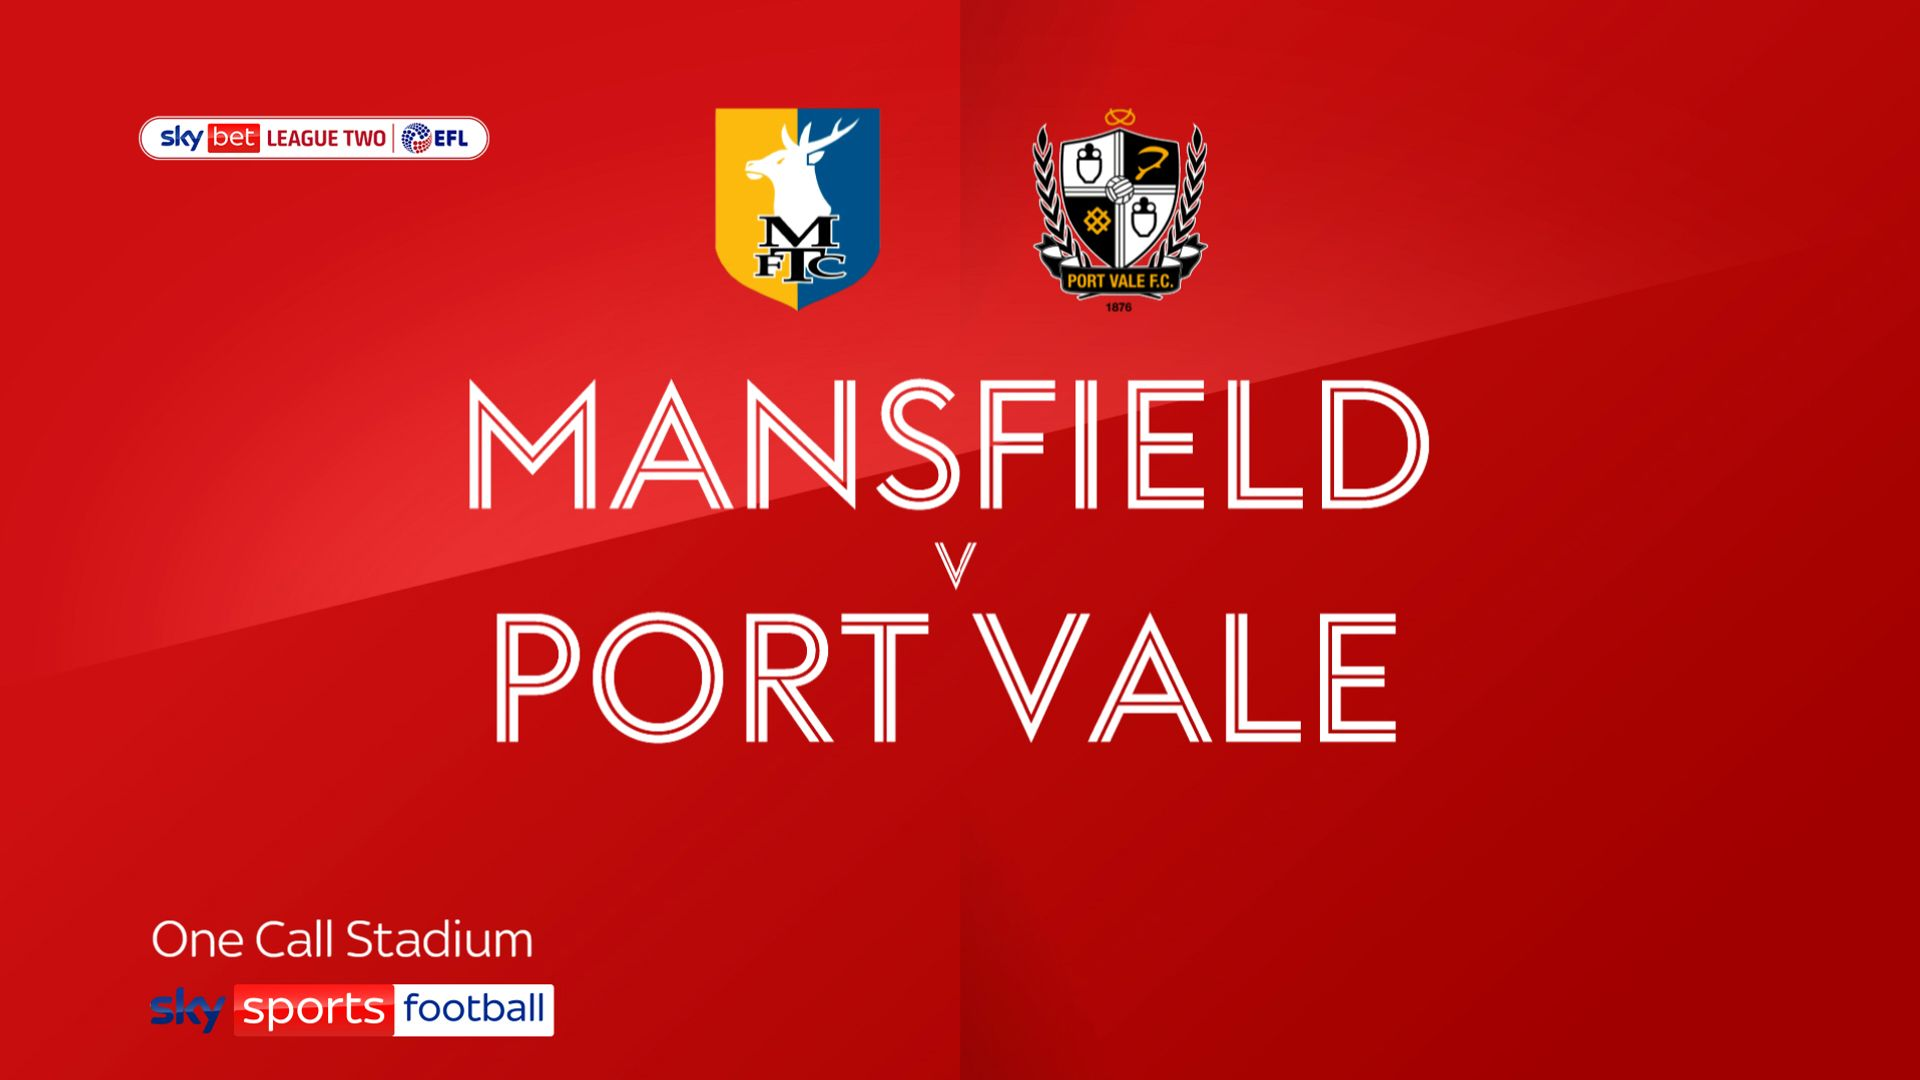 Mansfield winless run continues with draw against Port Vale